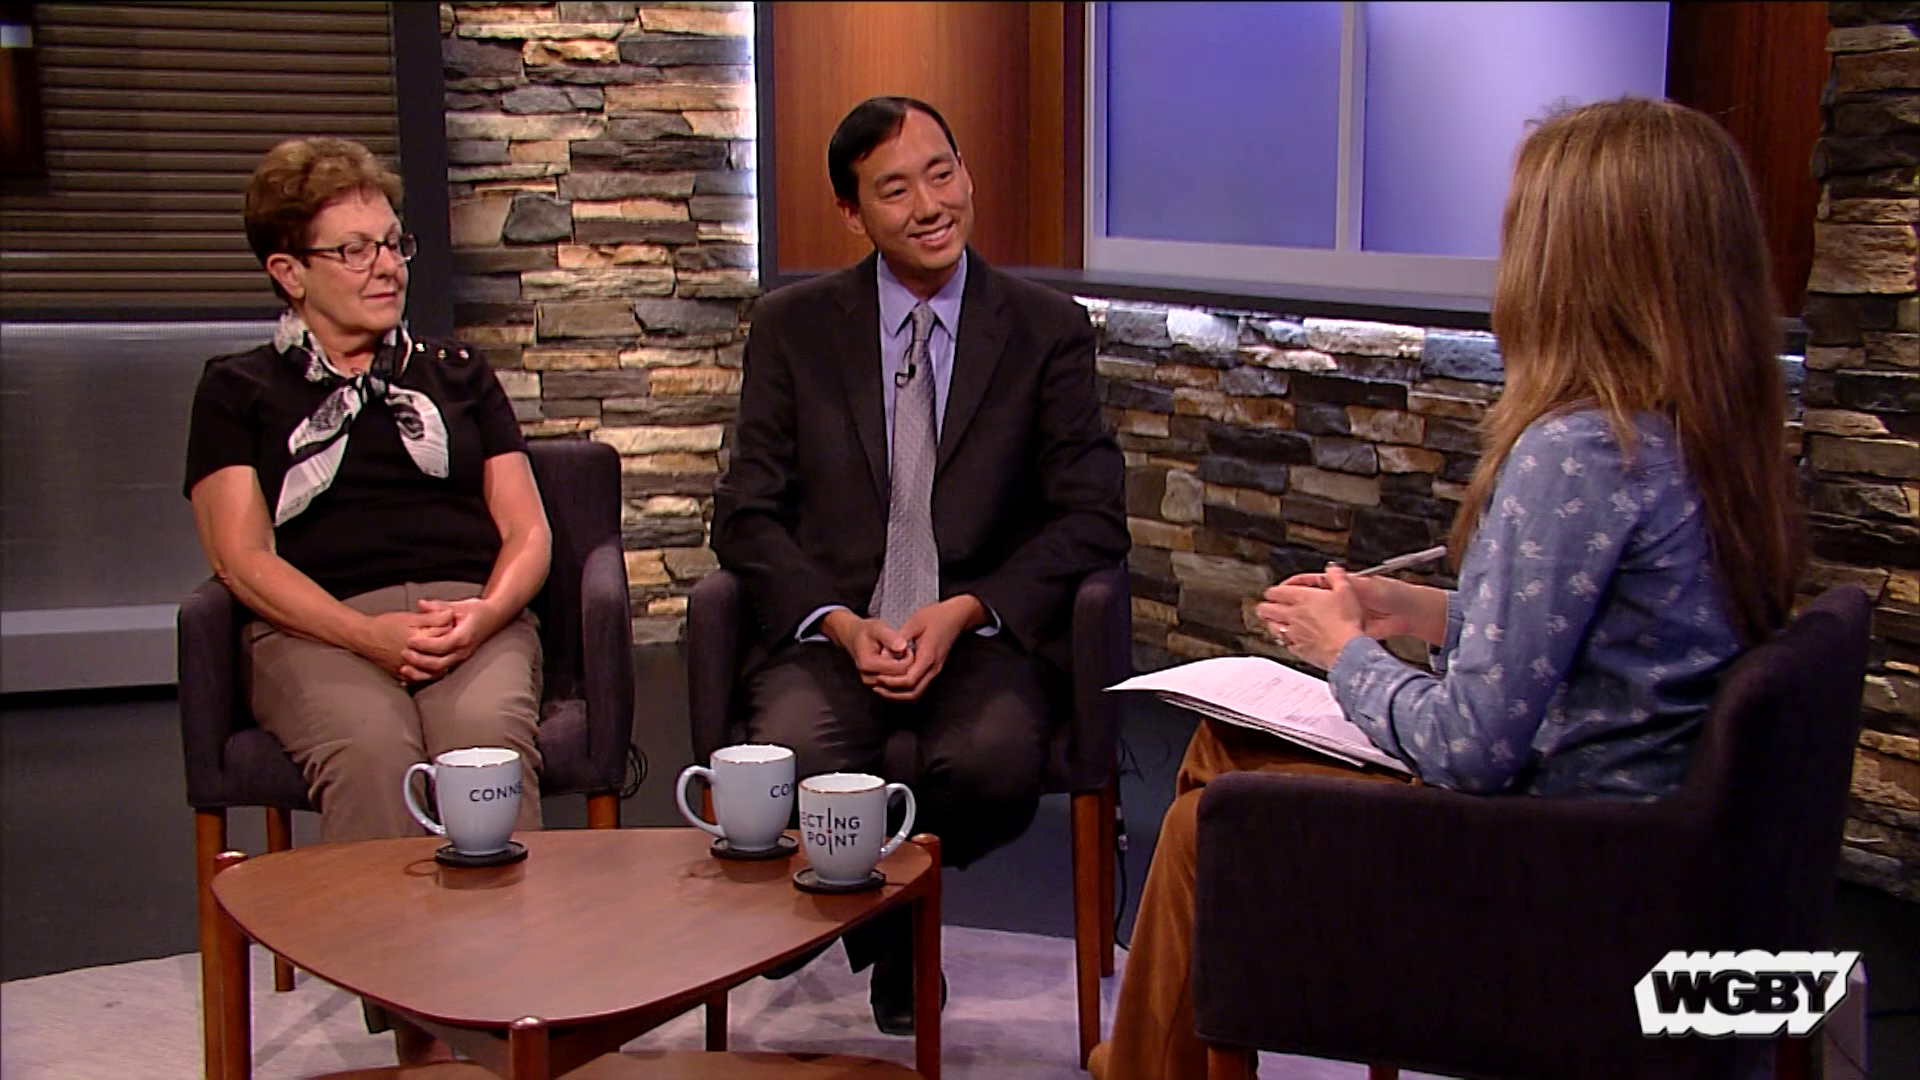 Macular Degeneration specialist Dr. Andrew Lam explains new treatment options that provide hope for patients struggling with the disease.